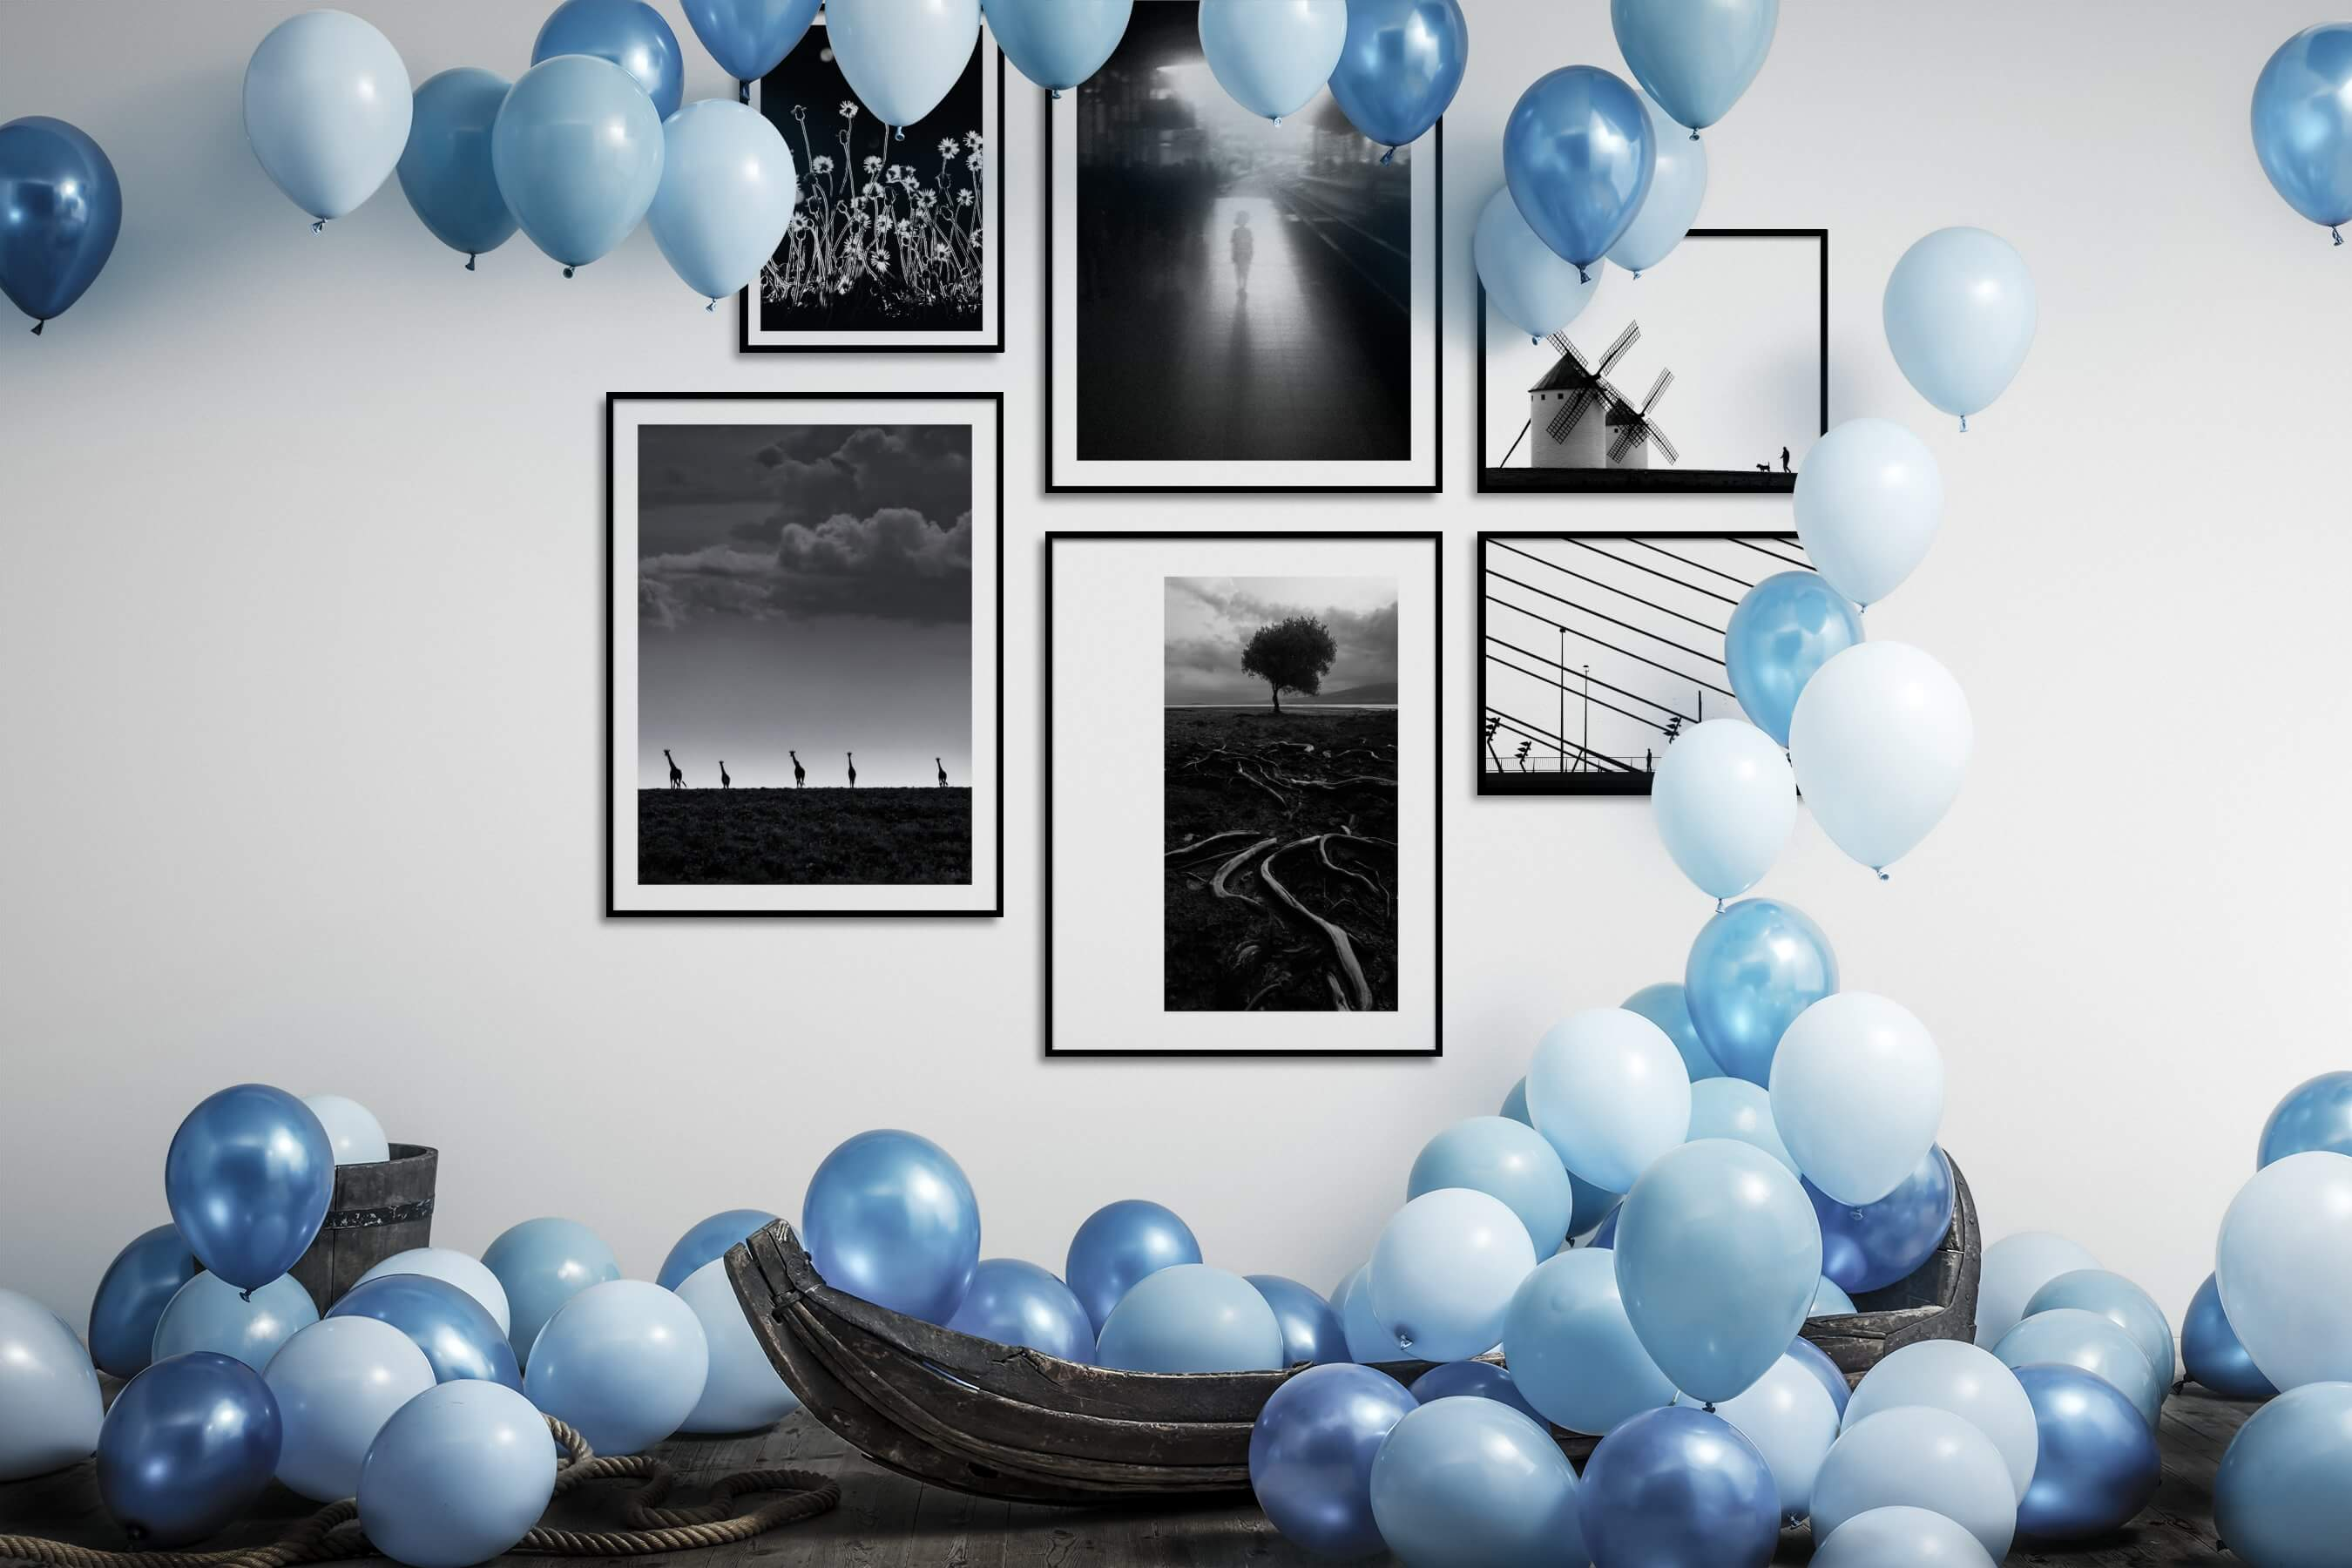 Gallery wall idea with six framed pictures arranged on a wall depicting Black & White, Flowers & Plants, City Life, Animals, Nature, Bright Tones, For the Minimalist, and Country Life